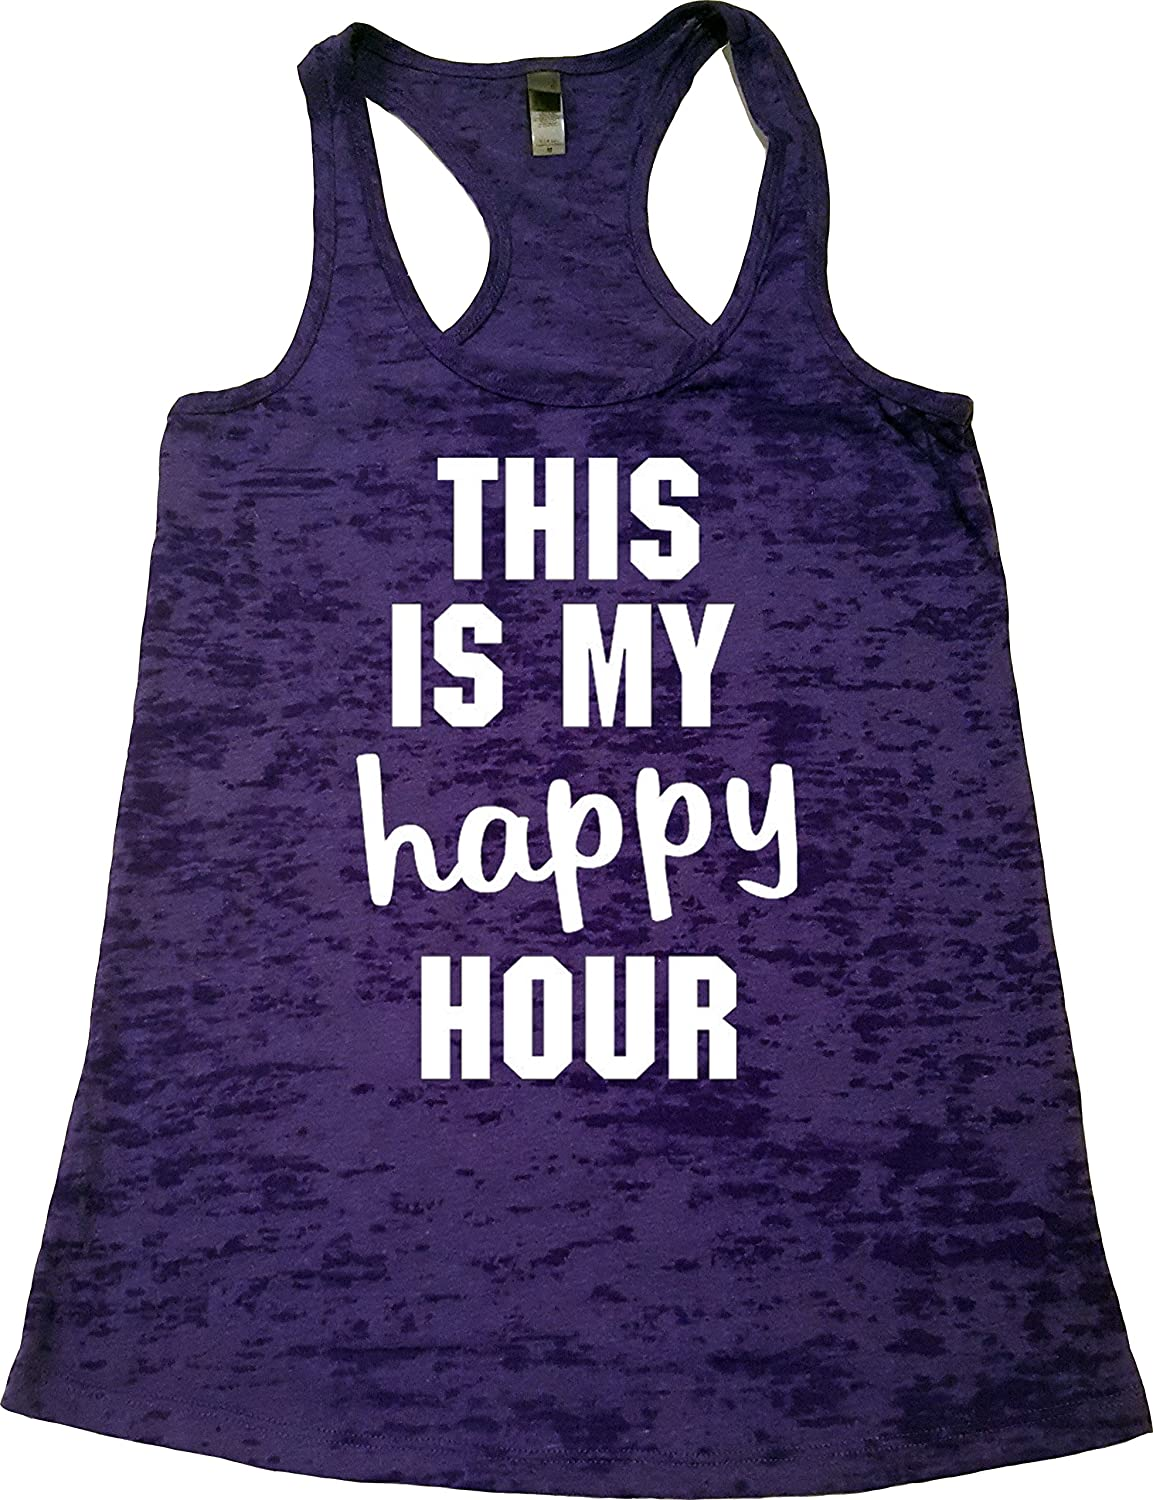 1a1791e6f7 Amazon.com: Orange Arrow Womens Workout Tank - This Is My Happy Hour -  Zumba Burnout Tops: Clothing